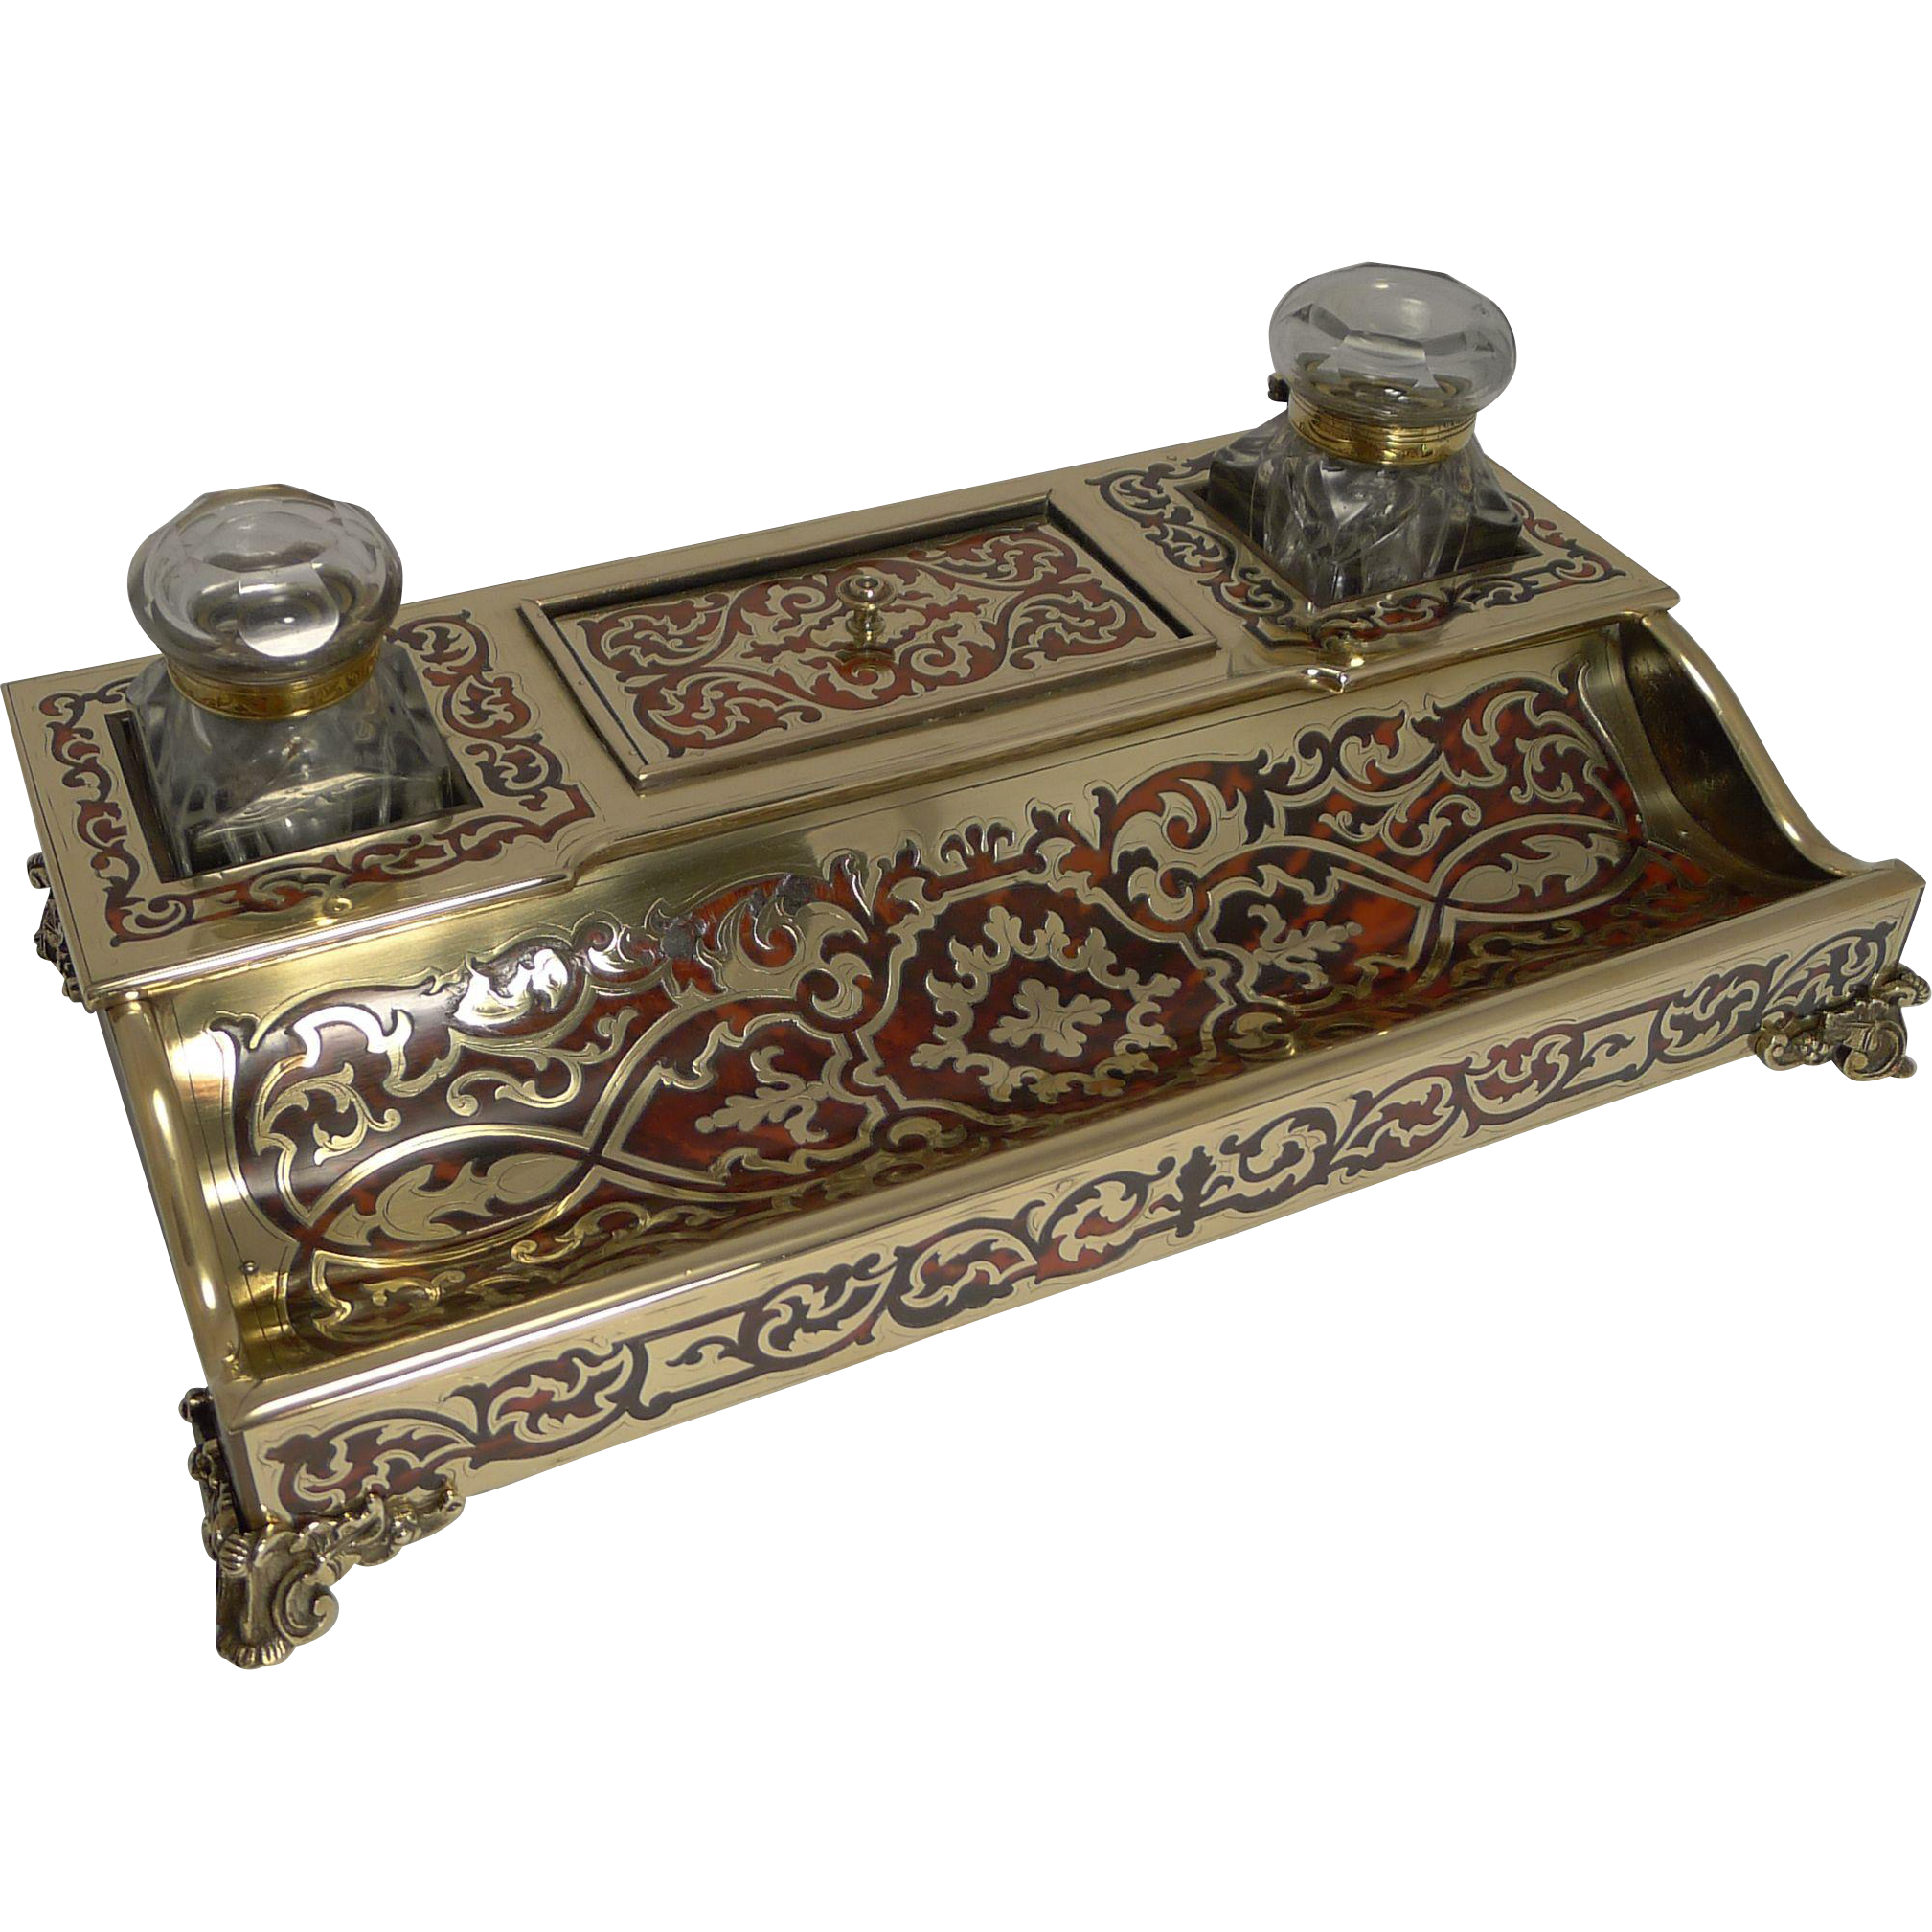 Magnificent and Grand Antique French Boulle Inkstand / Inkwell c.1830